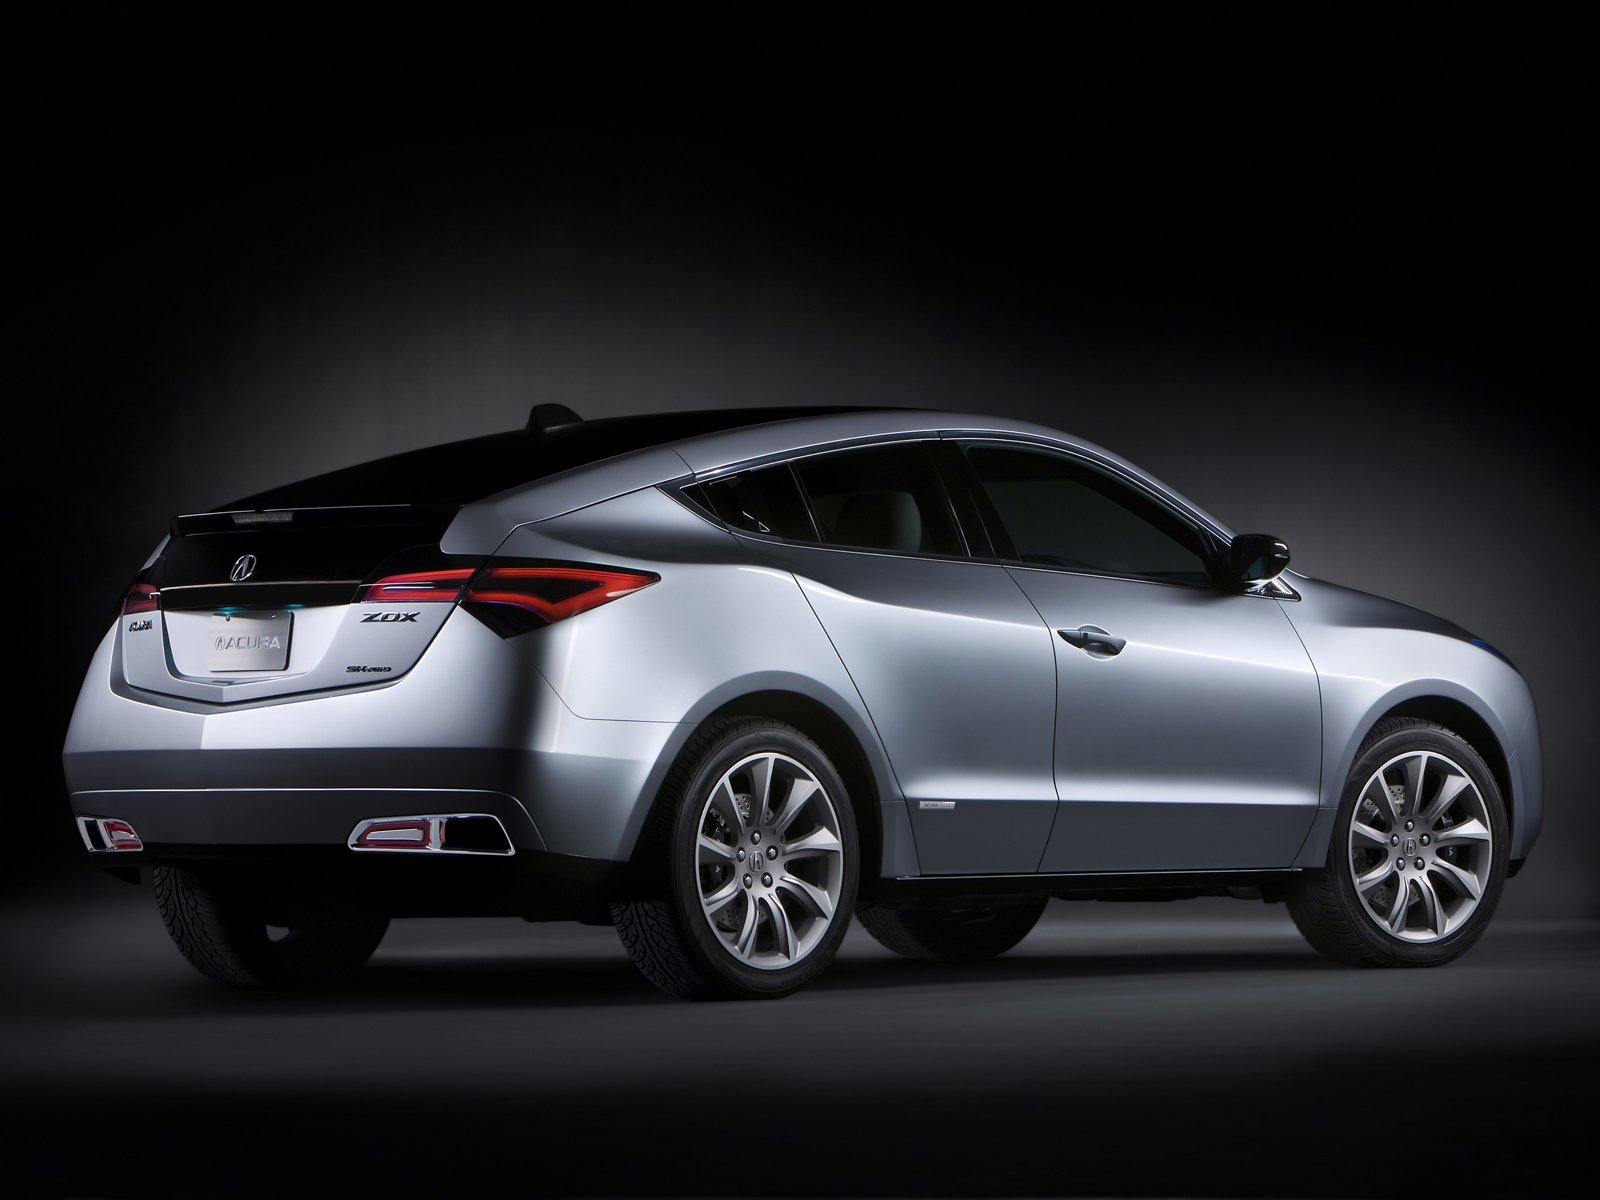 Latest Japanese Car Wallpapers 2009 Acura Zdx Concept Free Download